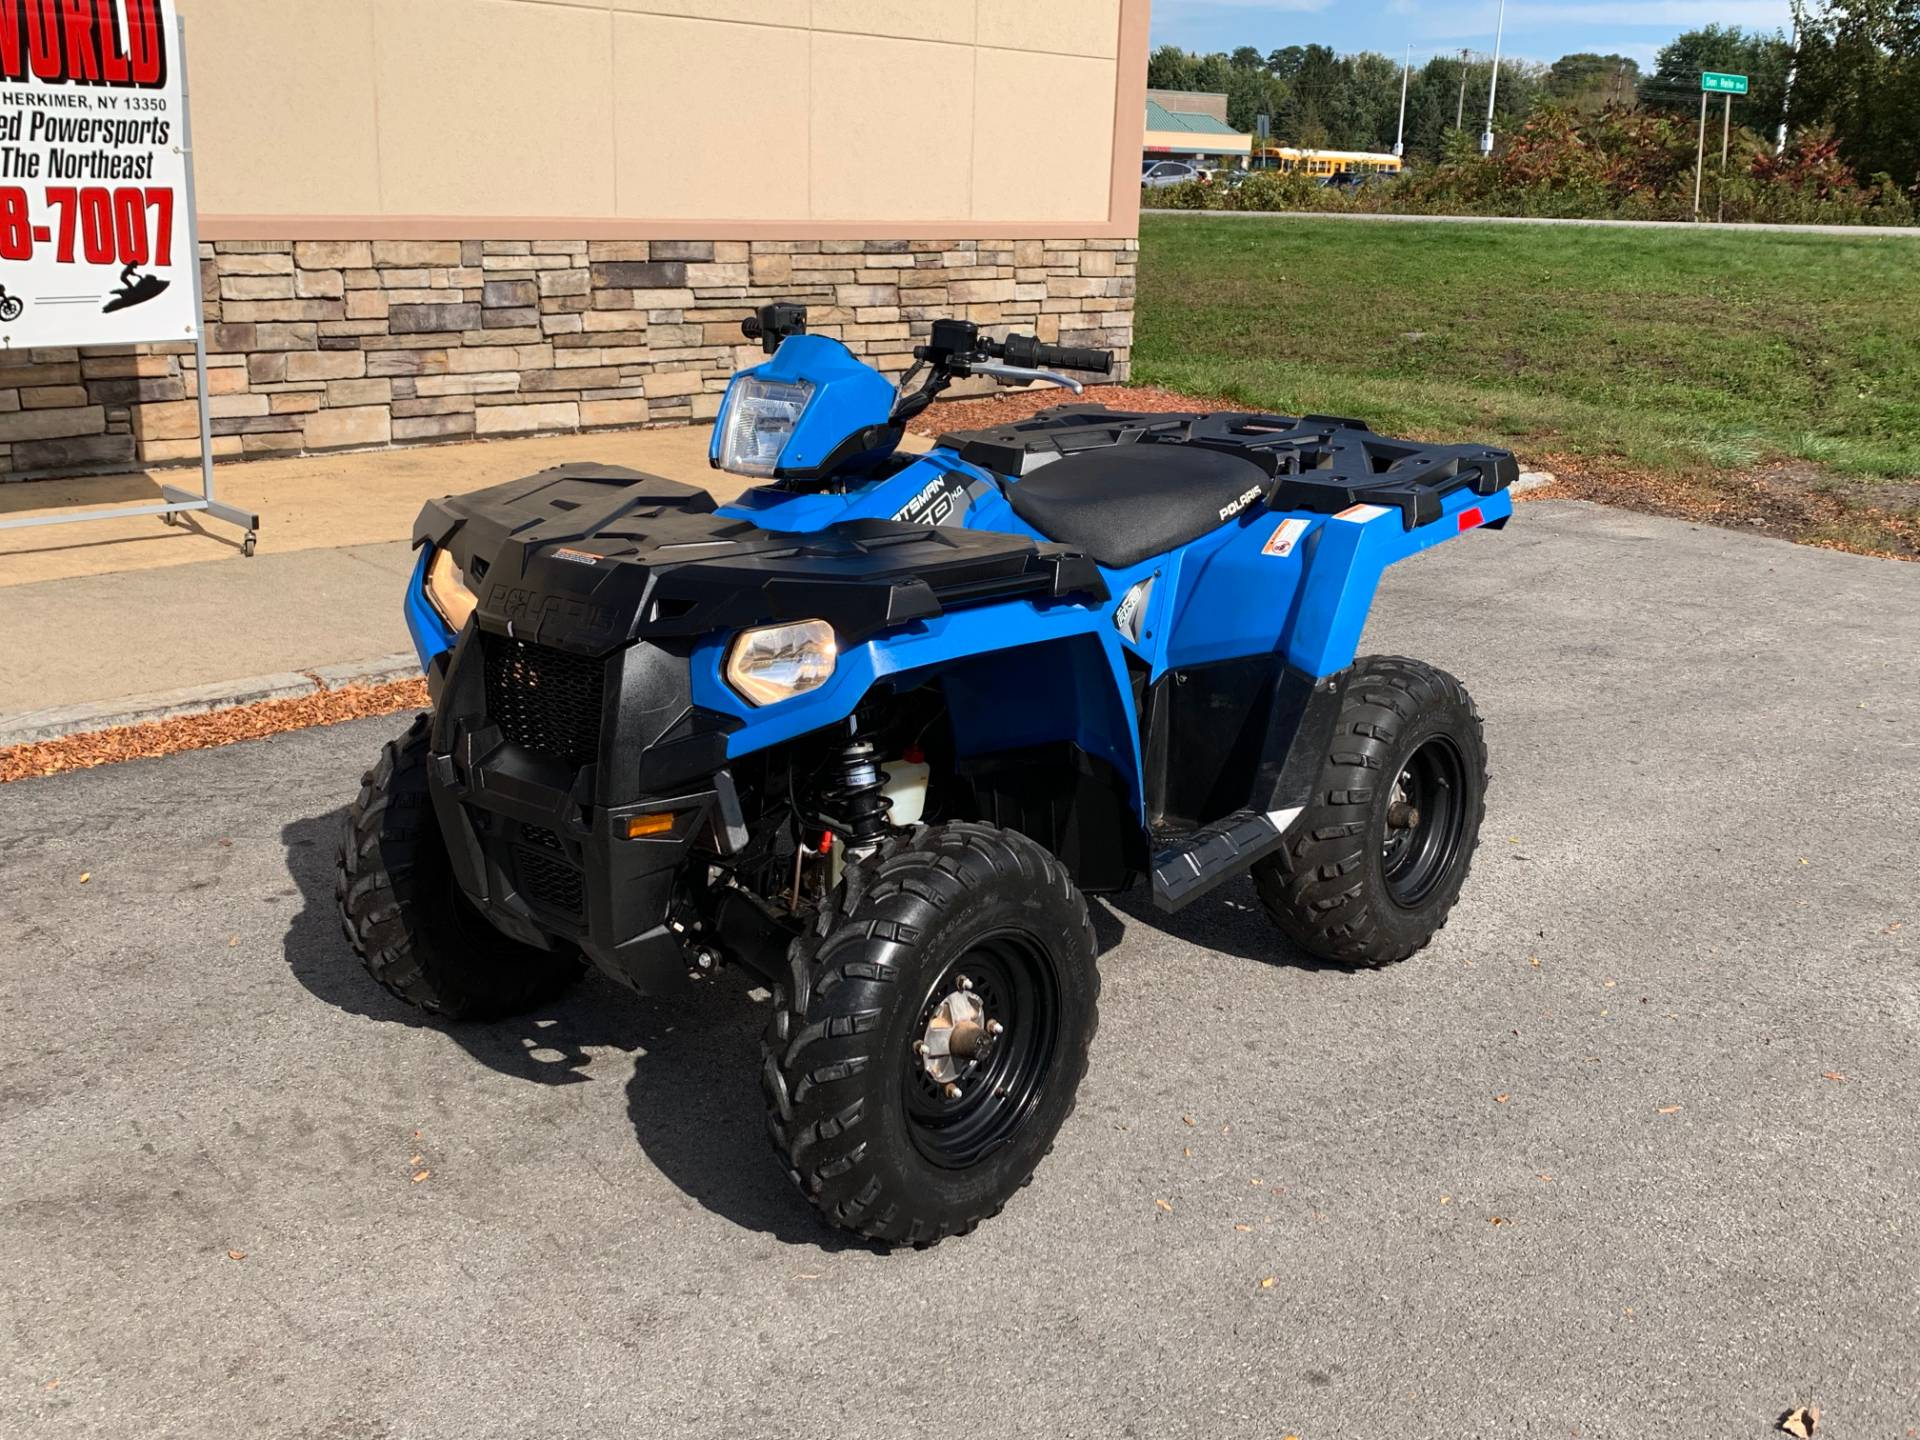 2017 Polaris Sportsman 450 H.O. in Herkimer, New York - Photo 3